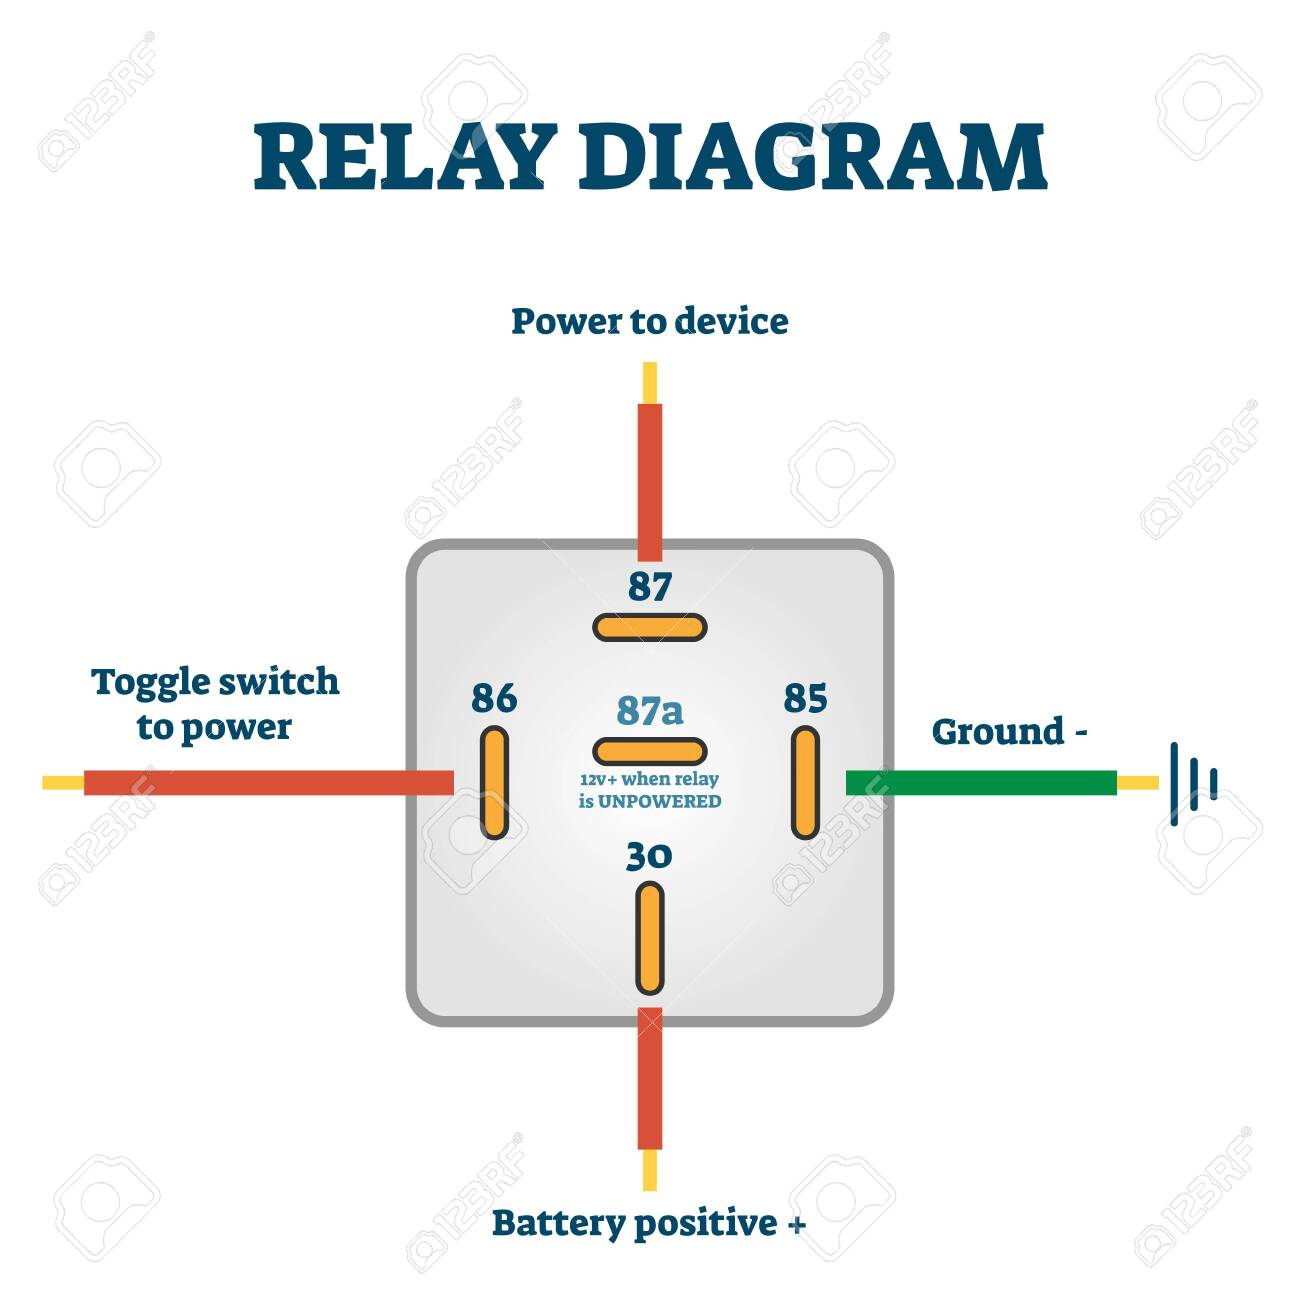 Relay switch example diagram drawing, vector illustration scheme..